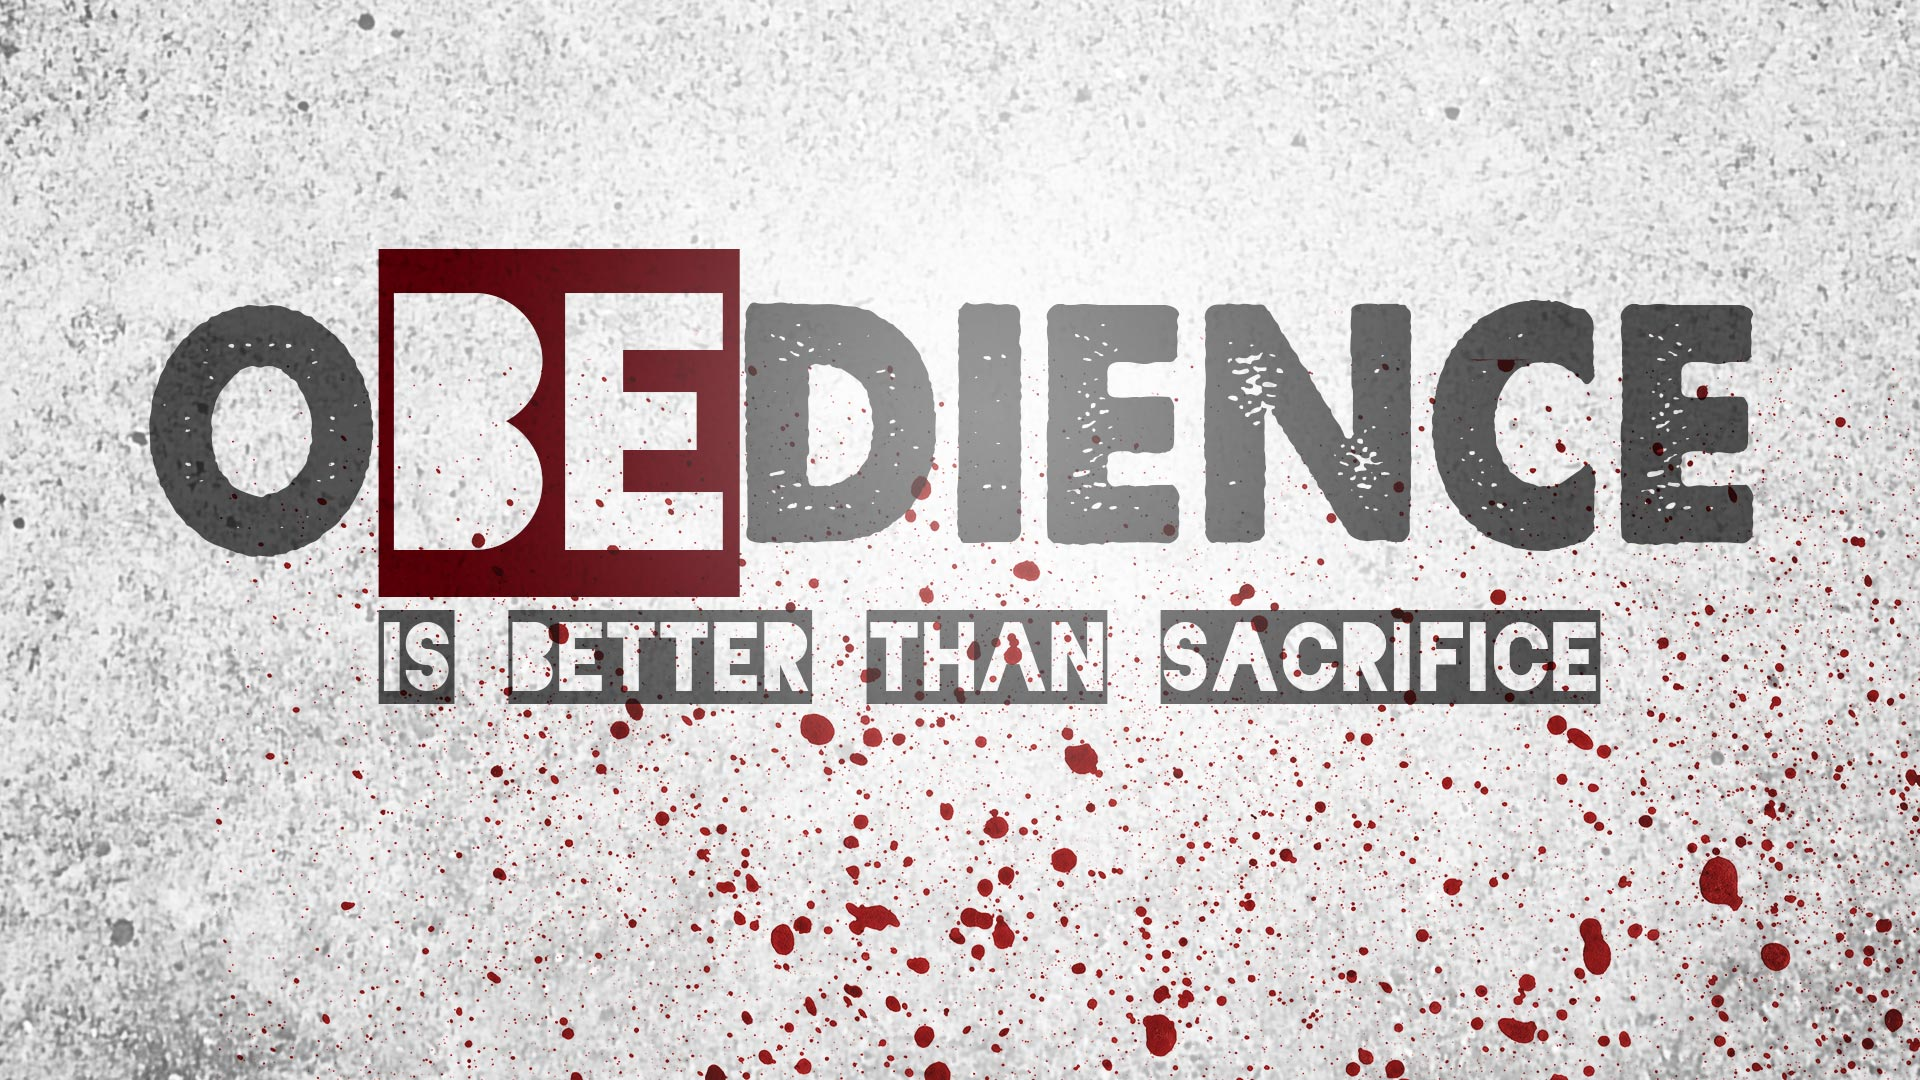 essay on obedience is better than sacrifice To obey is better than sacrifice v23 a confused sacrifice for obedience b people give a sacrifice instead of obedience c sacrifice does not make up for obedience.